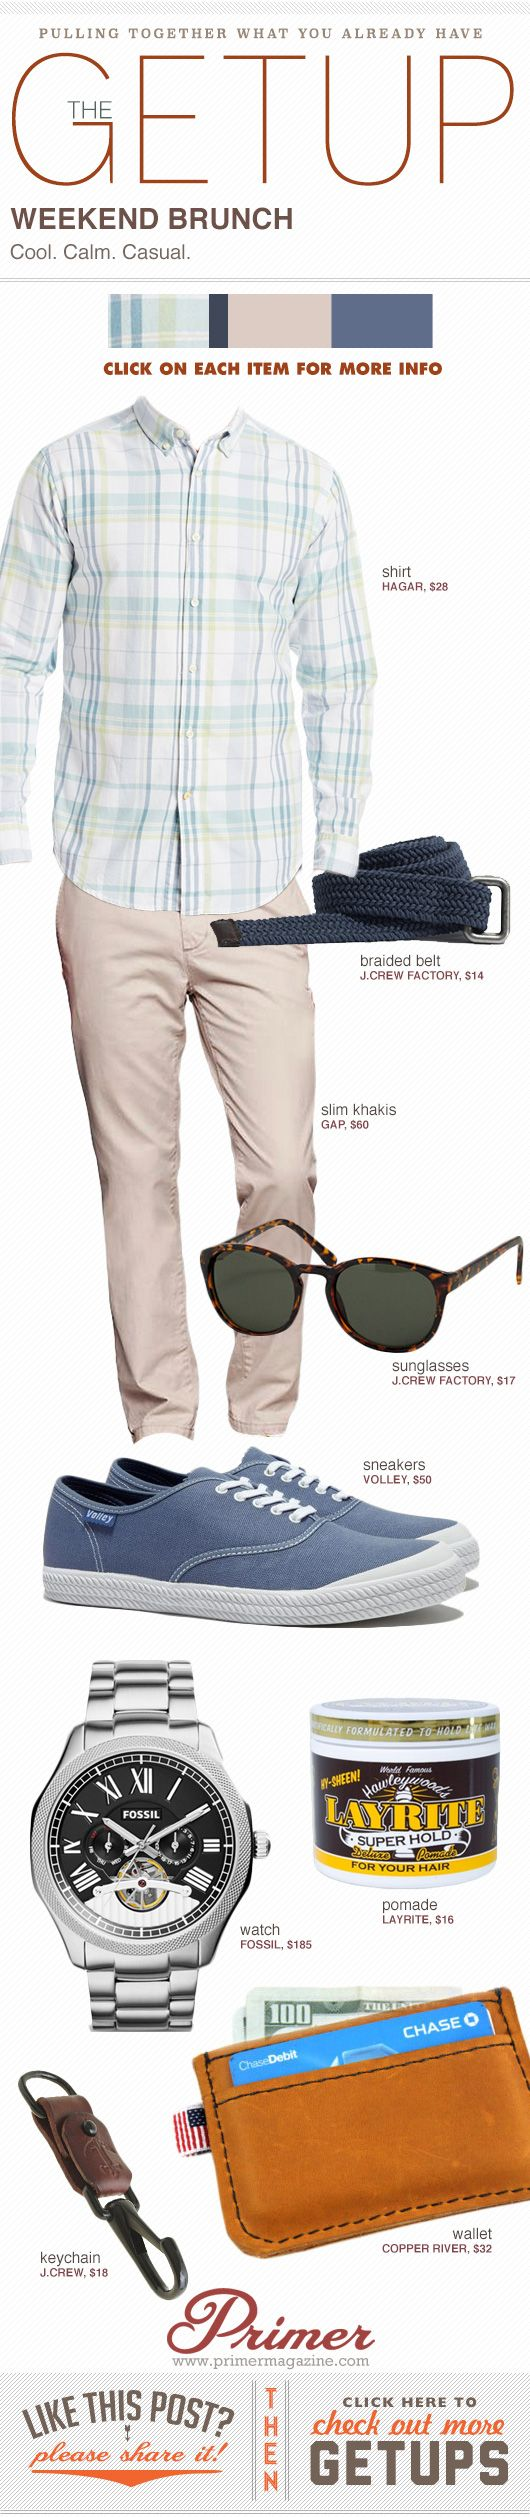 The Getup: Weekend Brunch #casual #menstyle #menswear